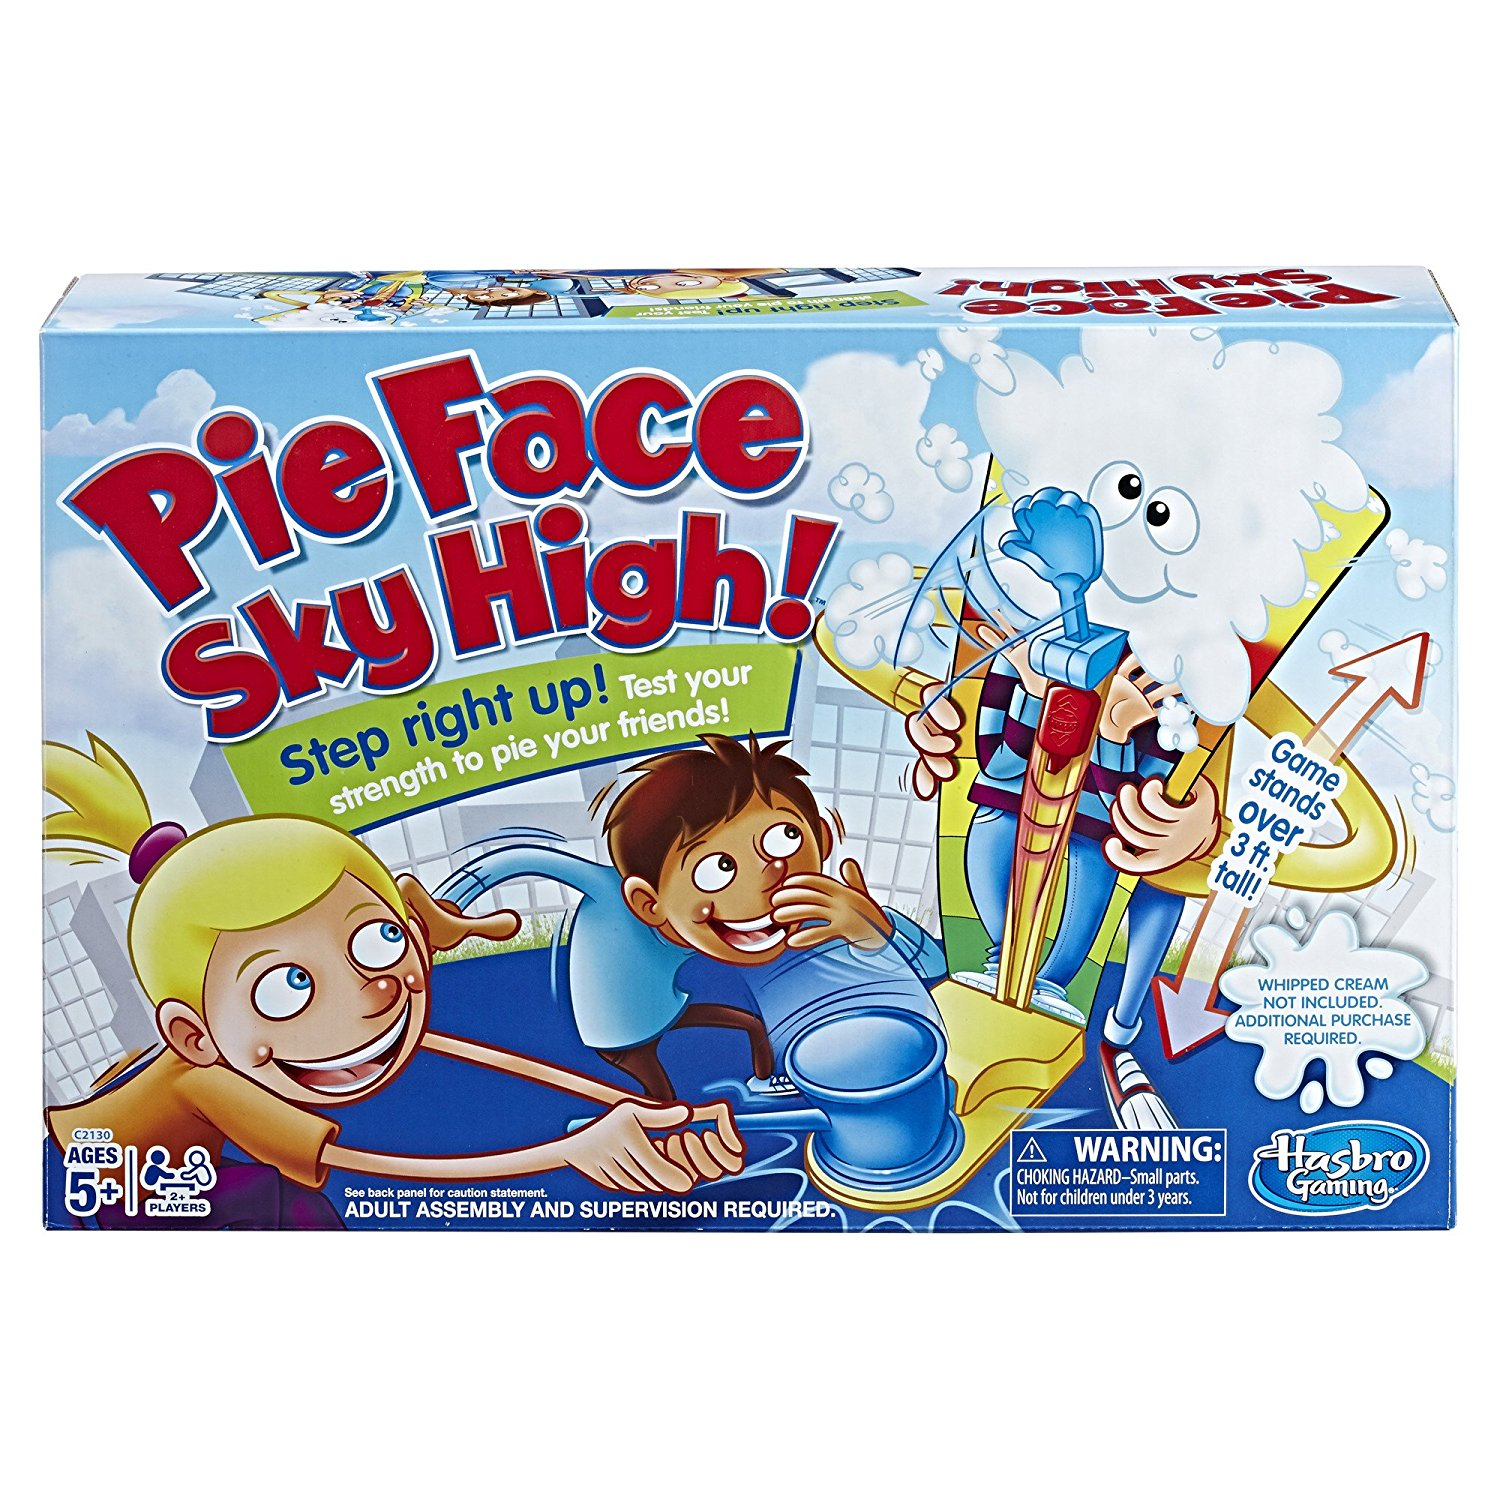 The Pie Face Sky High Game, From The Toy Fair, Check Out Our Review